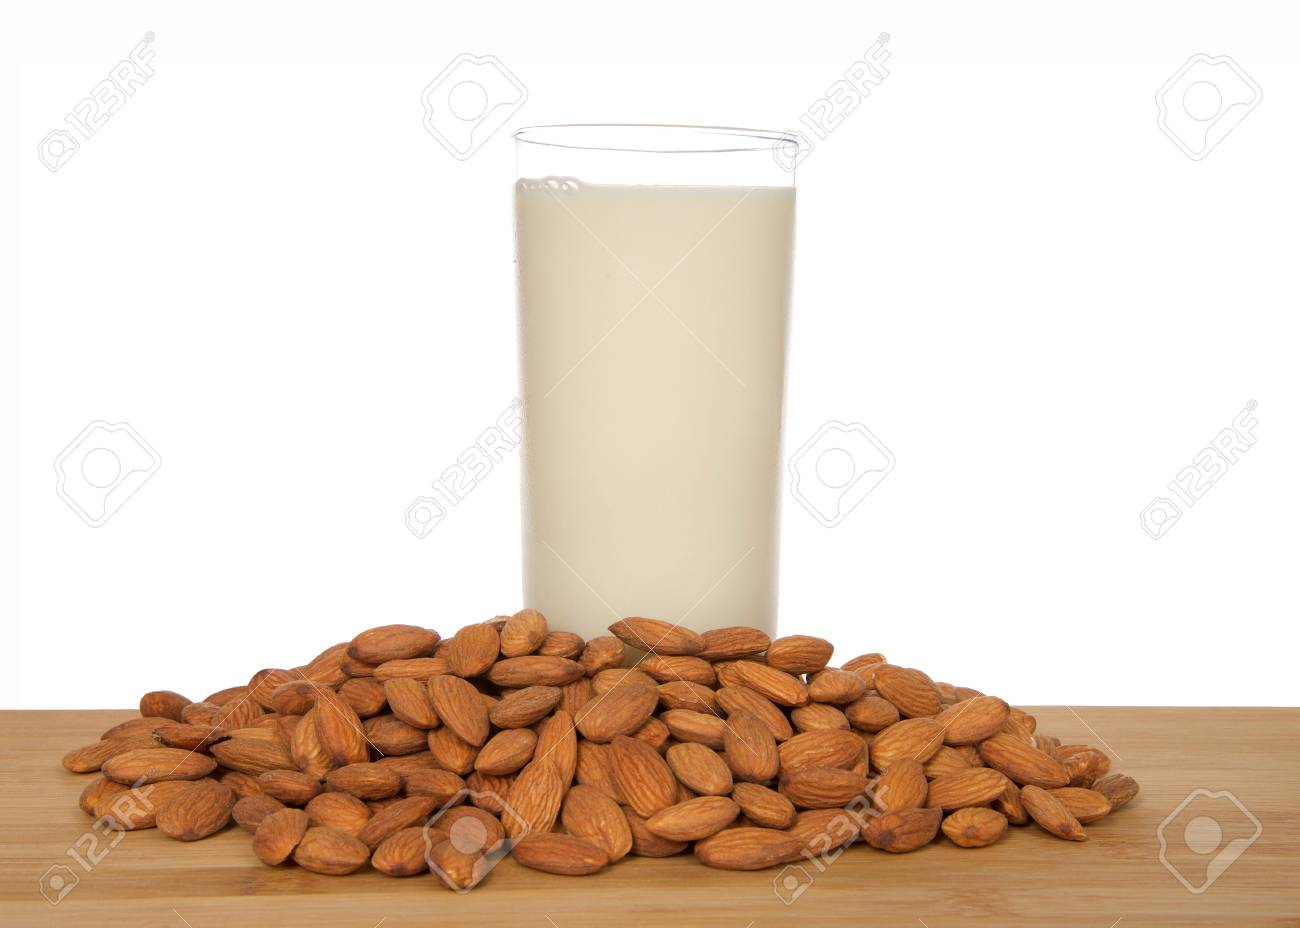 Glass of almond milk on a wood table surrounded by whole raw almonds, isolated on white background. Almond milk is lower in calories than other milks and cholesterol free, lactose free. - 116310886